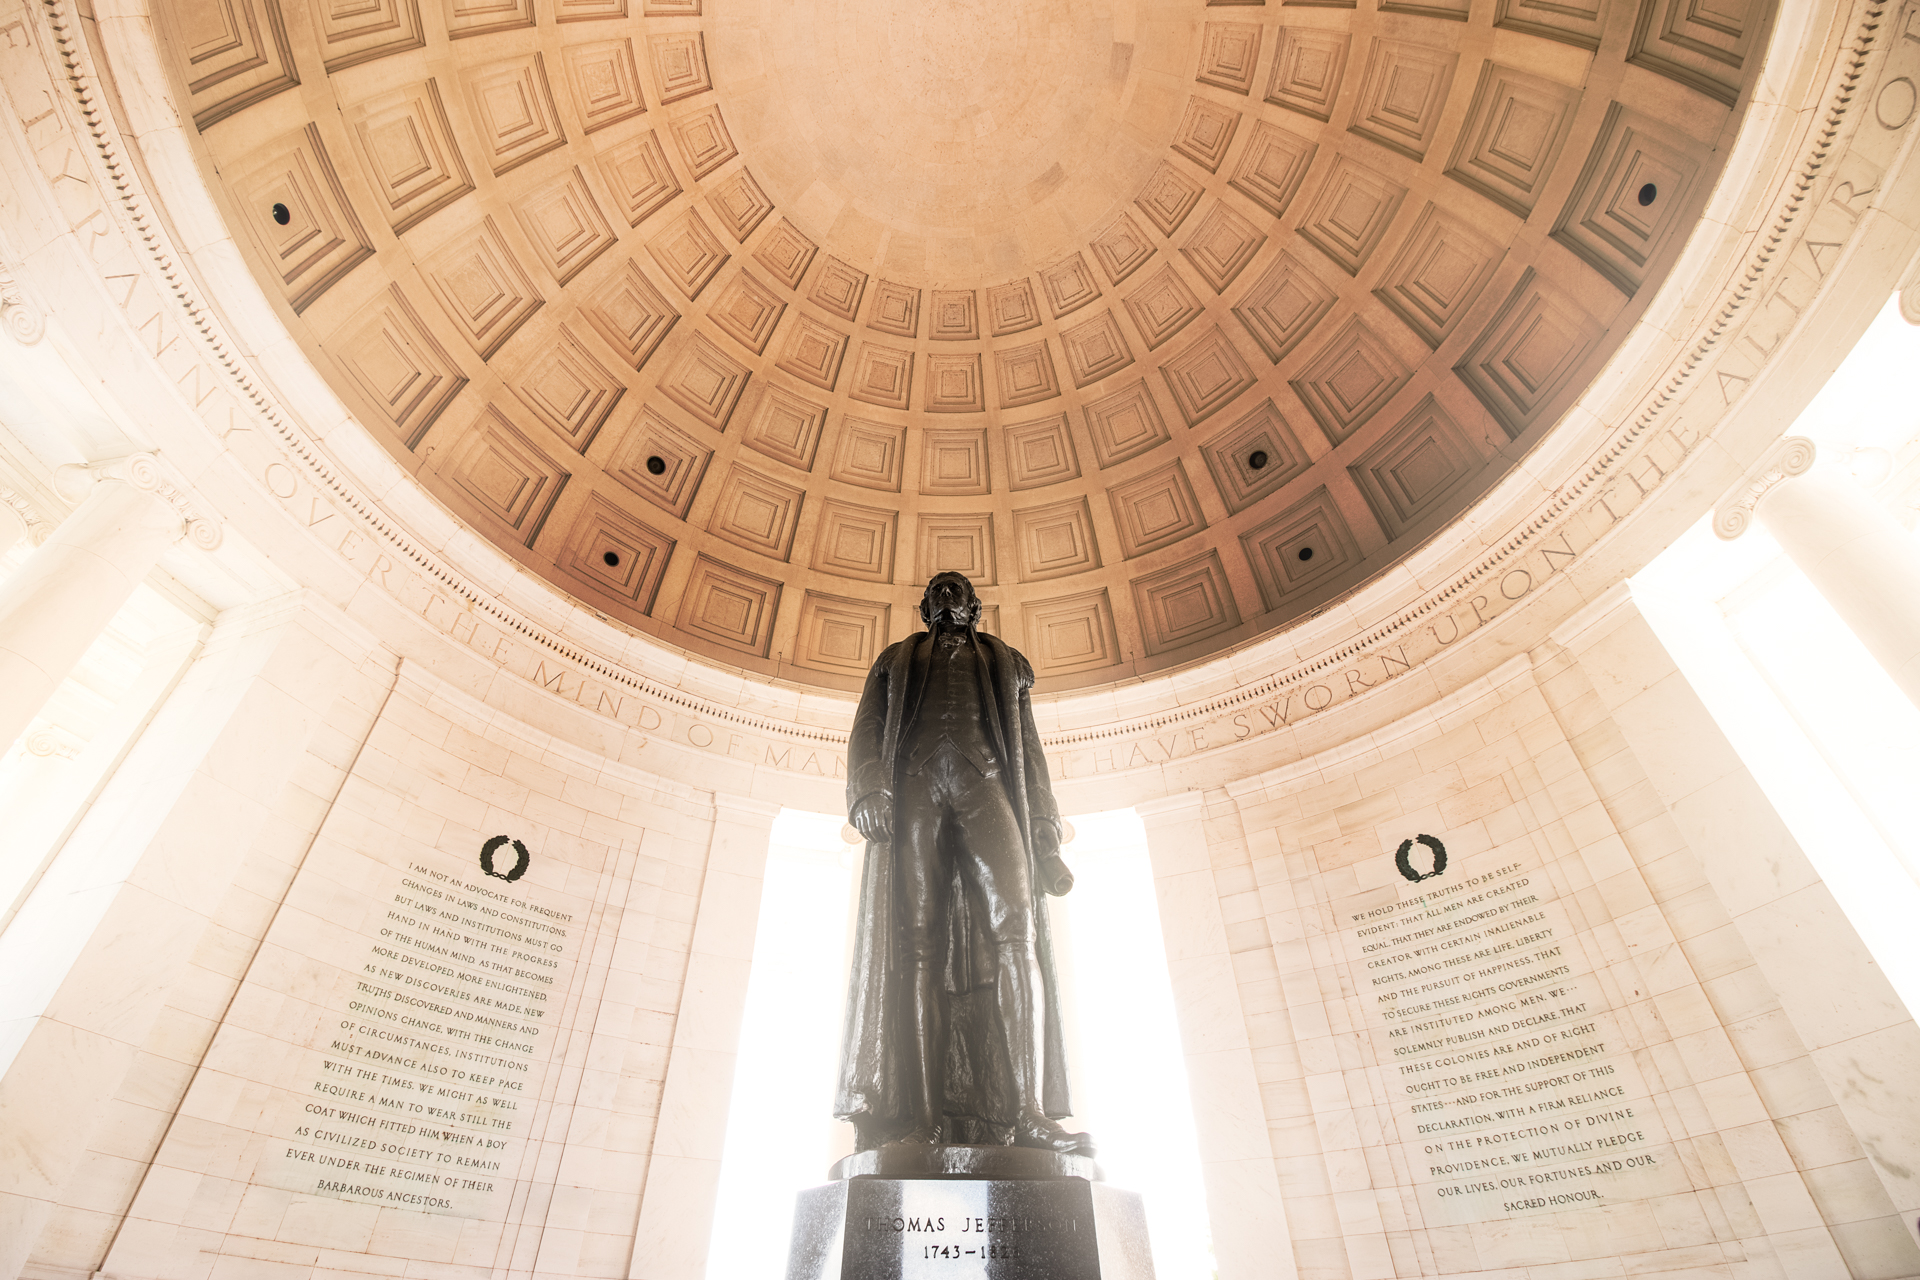 Midday Glow – Glowing sunlight enters the Jefferson Memorial (Image: Zack Lewkowicz)<p></p>